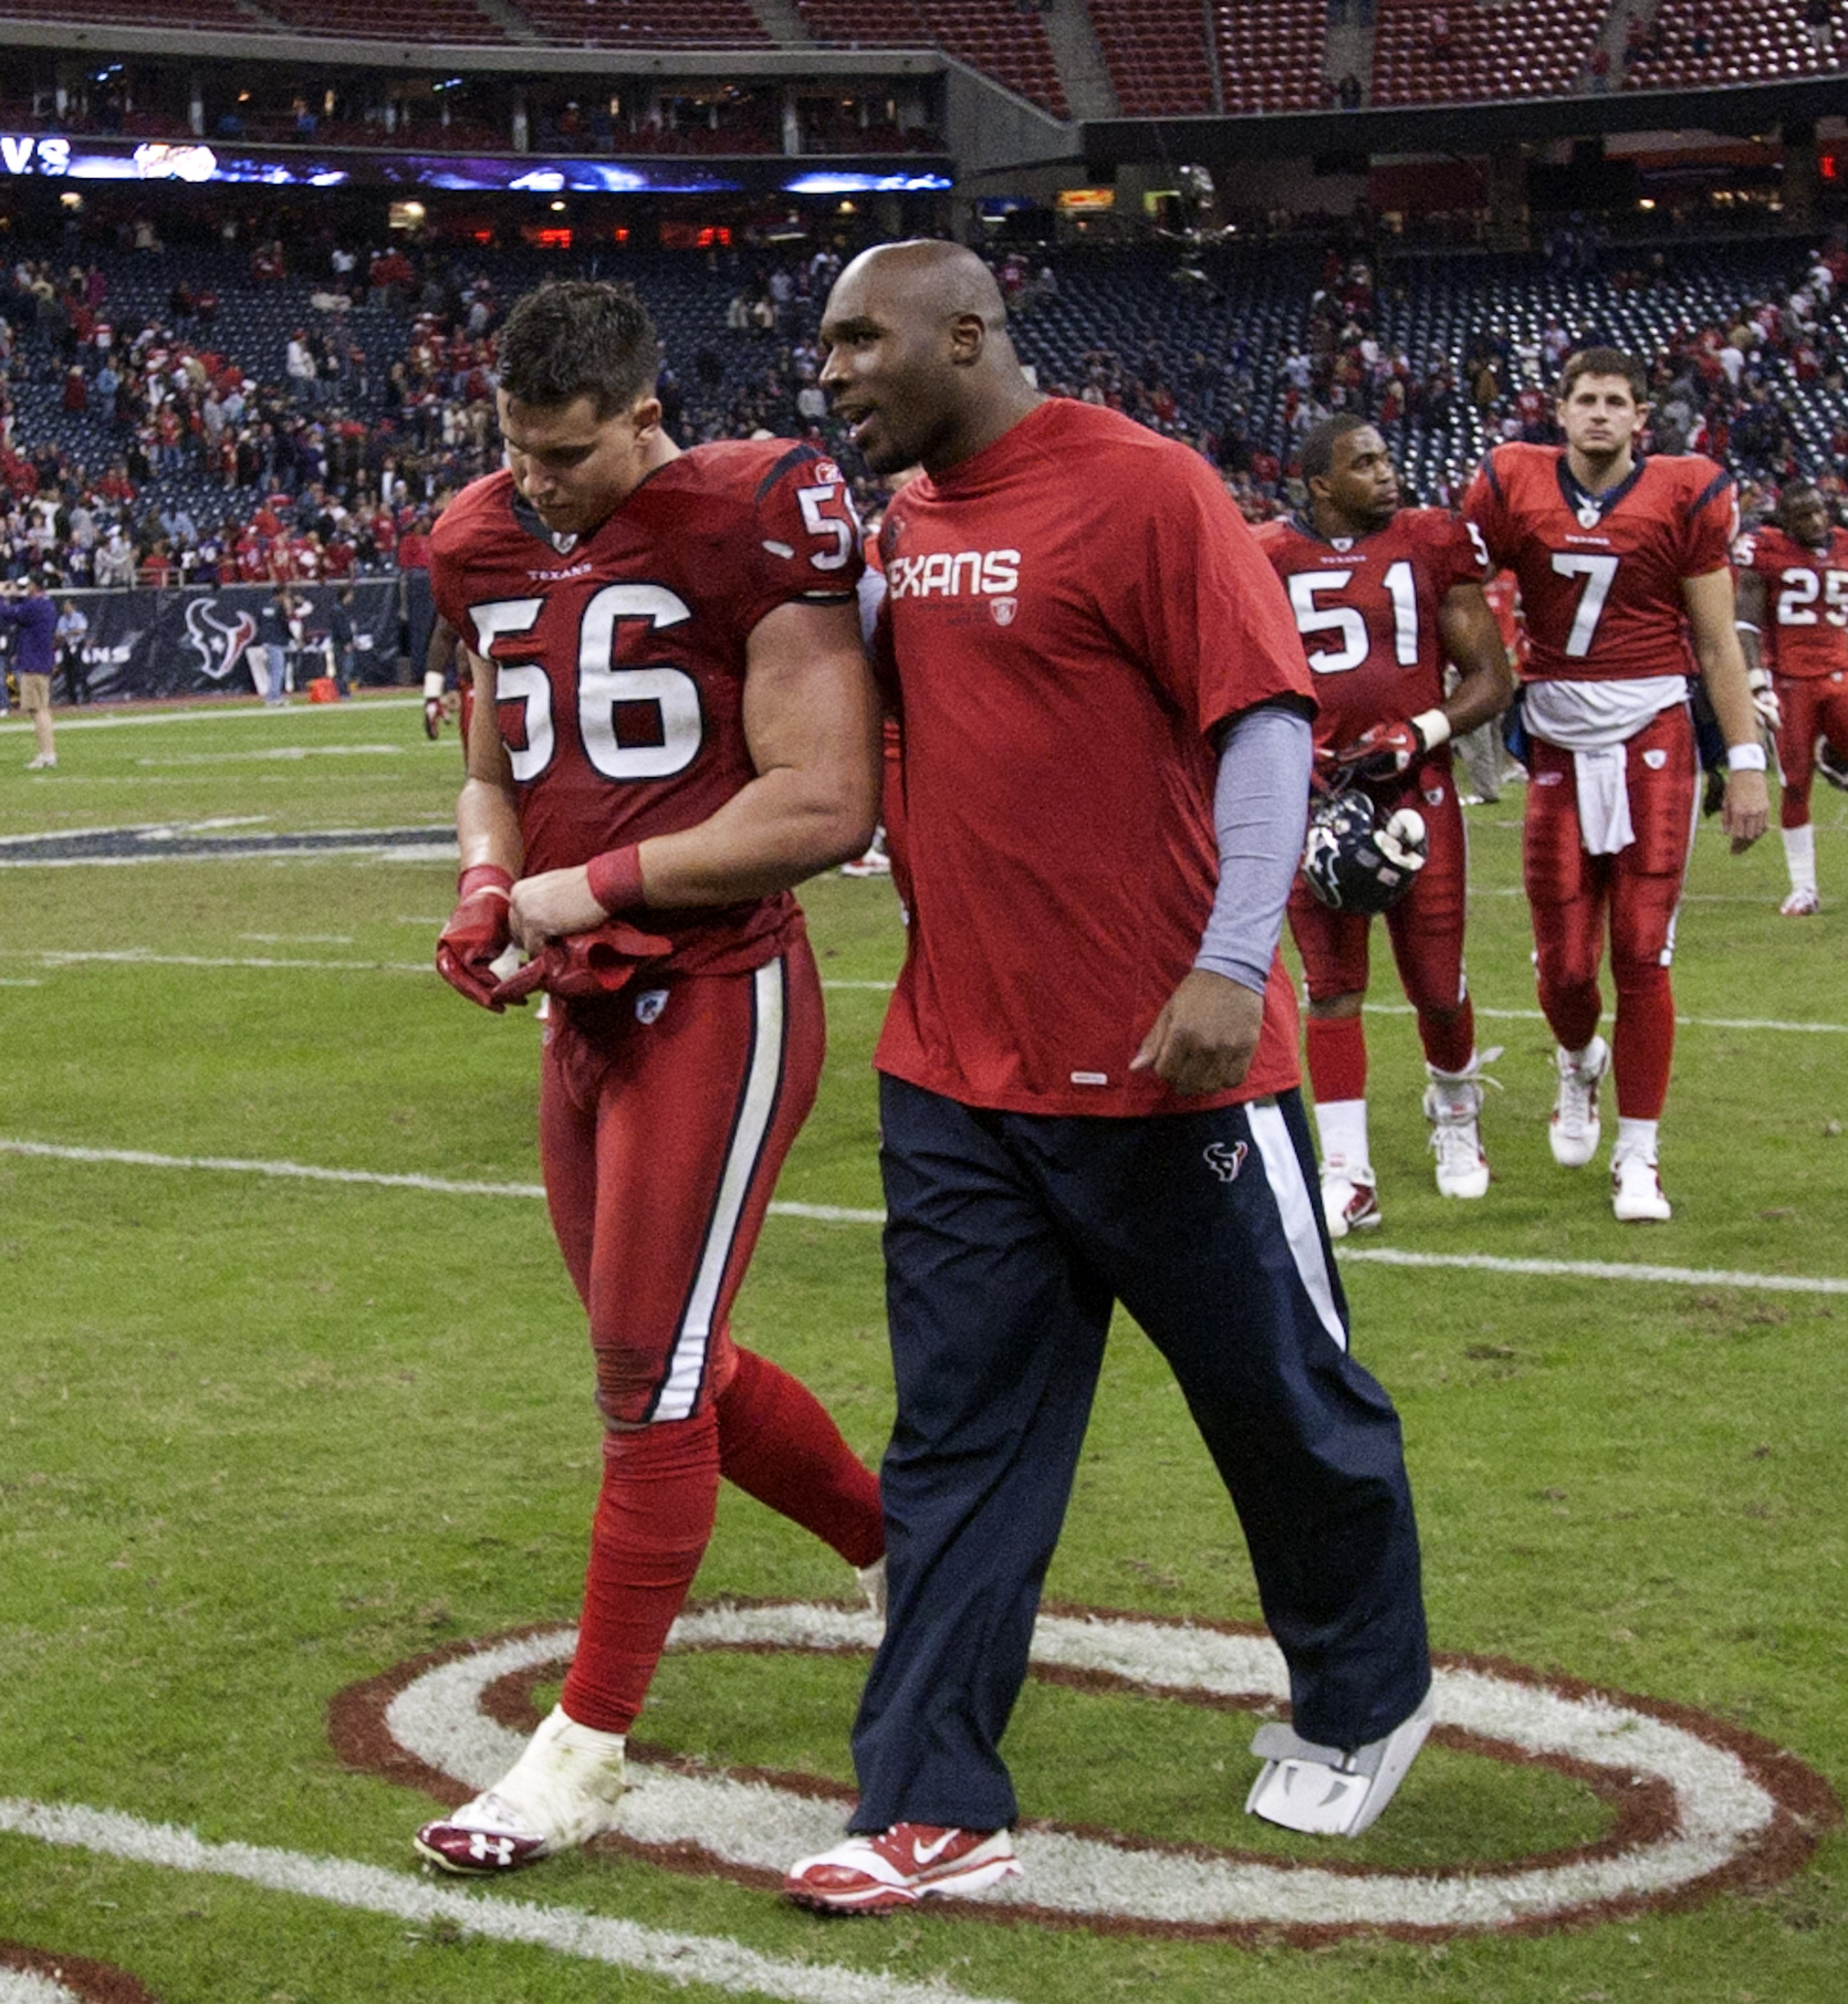 HOUSTON, TX - DECEMBER 13:  Linebacker Brian Cushing #56 and injured linebacker DeMeco Ryan walk off the field after Houston lost in overtime to Baltimore Ravens at Reliant Stadium on December 13, 2010 in Houston, Texas.  (Photo by Bob Levey/Getty Images)